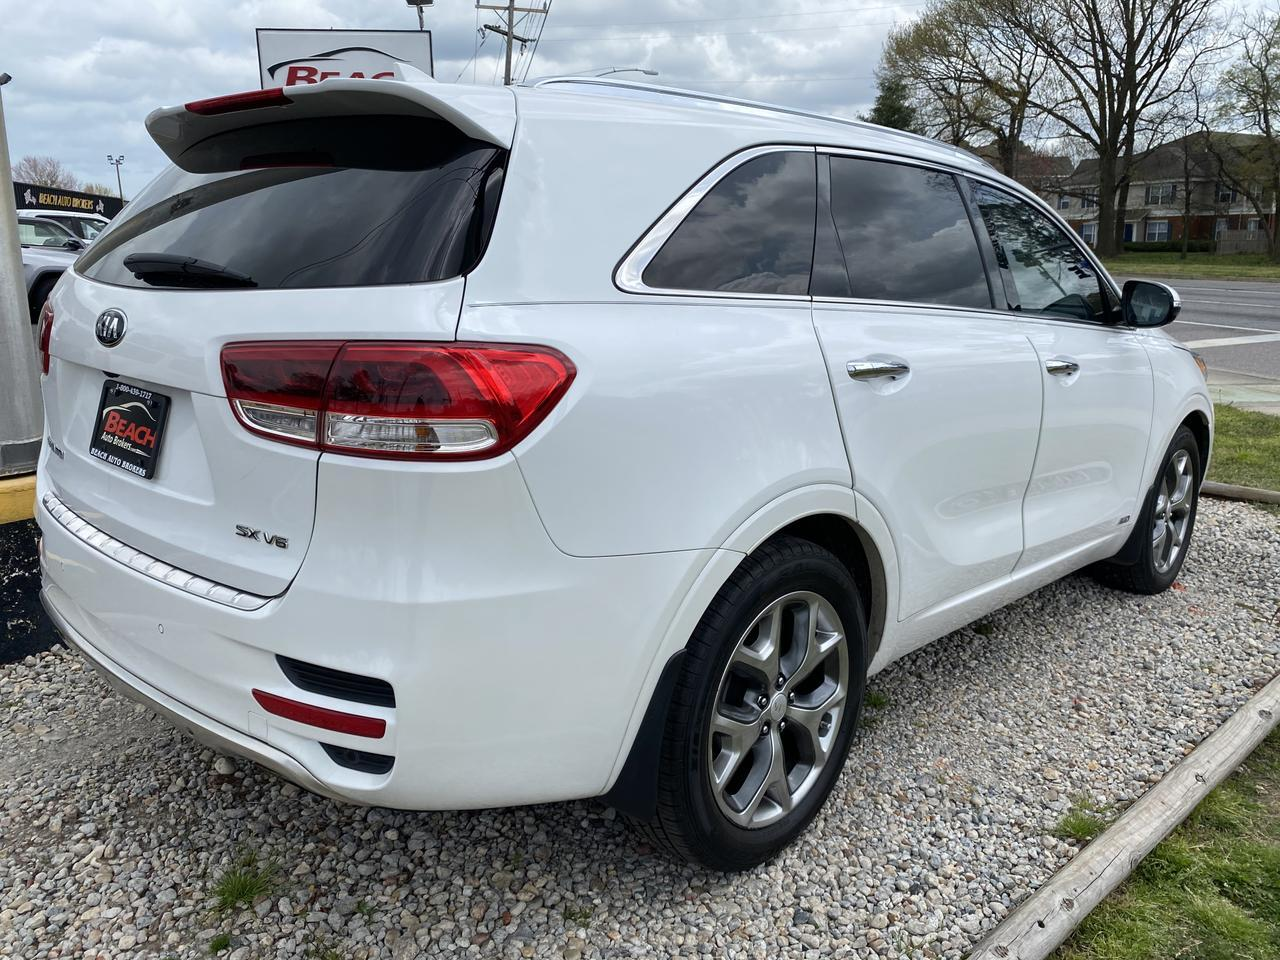 2016 KIA SORENTO SX, WARRANTY, LEATHER, NAV, HEATED/COOLED SEATS, BLUETOOTH, BACKUP CAM, PARKING SENSORS, SUNROOF! Norfolk VA